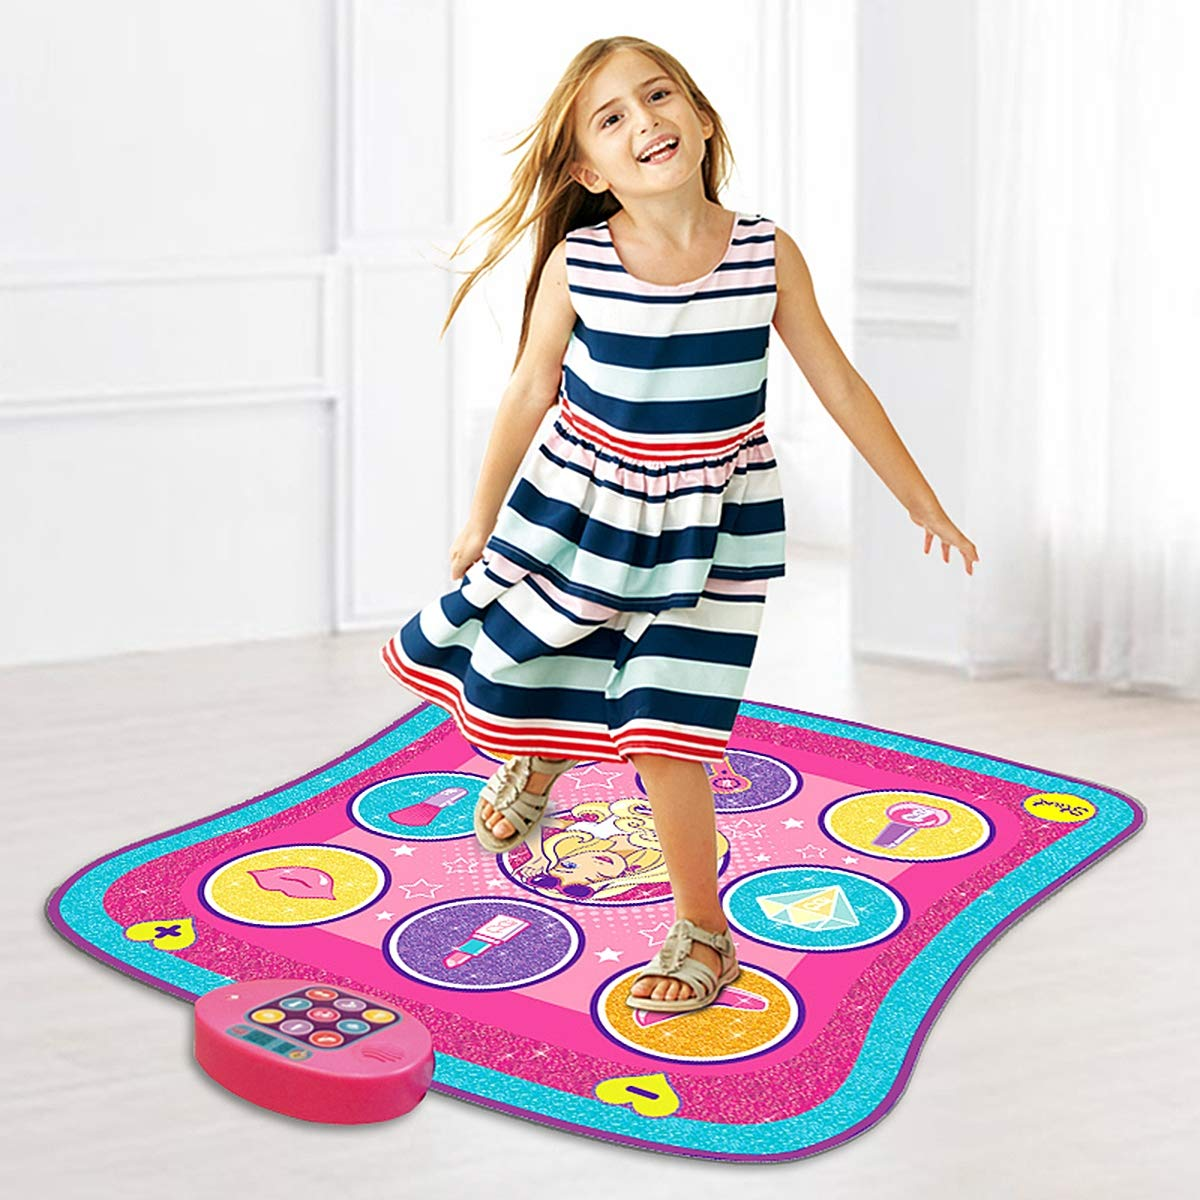 Color Dynamic Dance Mat, Children's Electronic Music Play Mat Ideal Gift and Toy Suitable for Children Over 3 Years Old,Pink